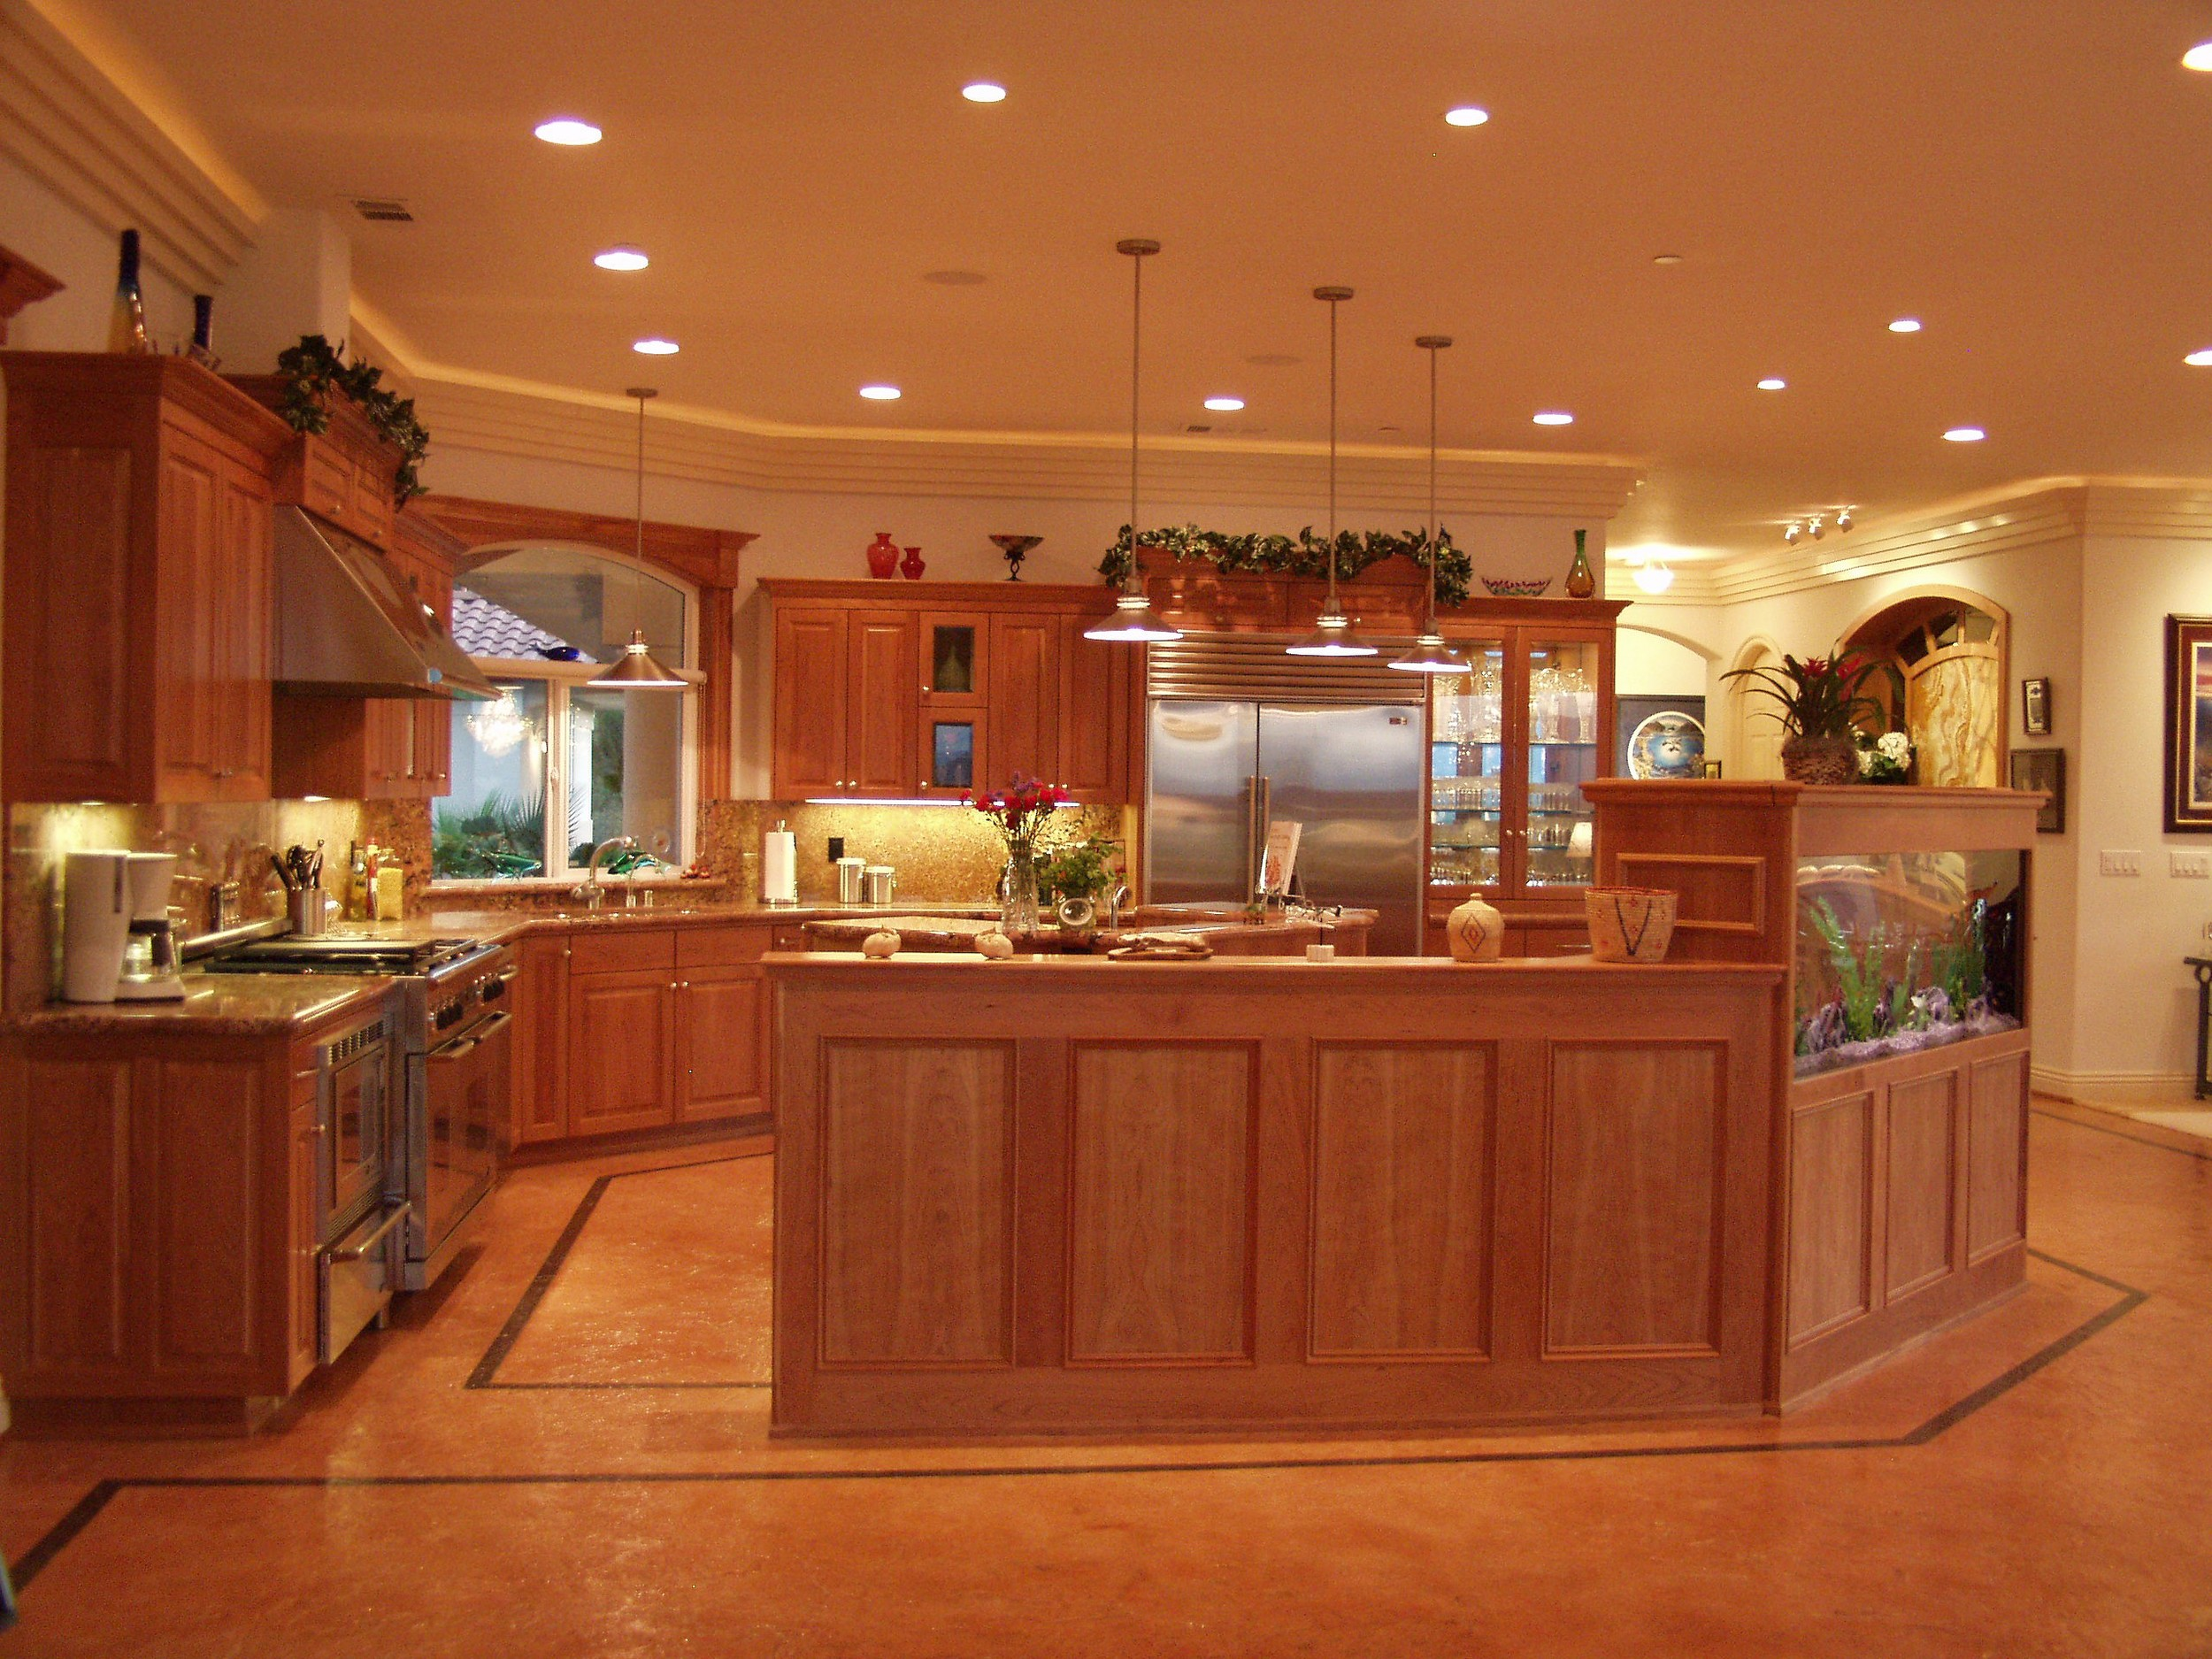 shasta-wood-products-residential-07.jpg